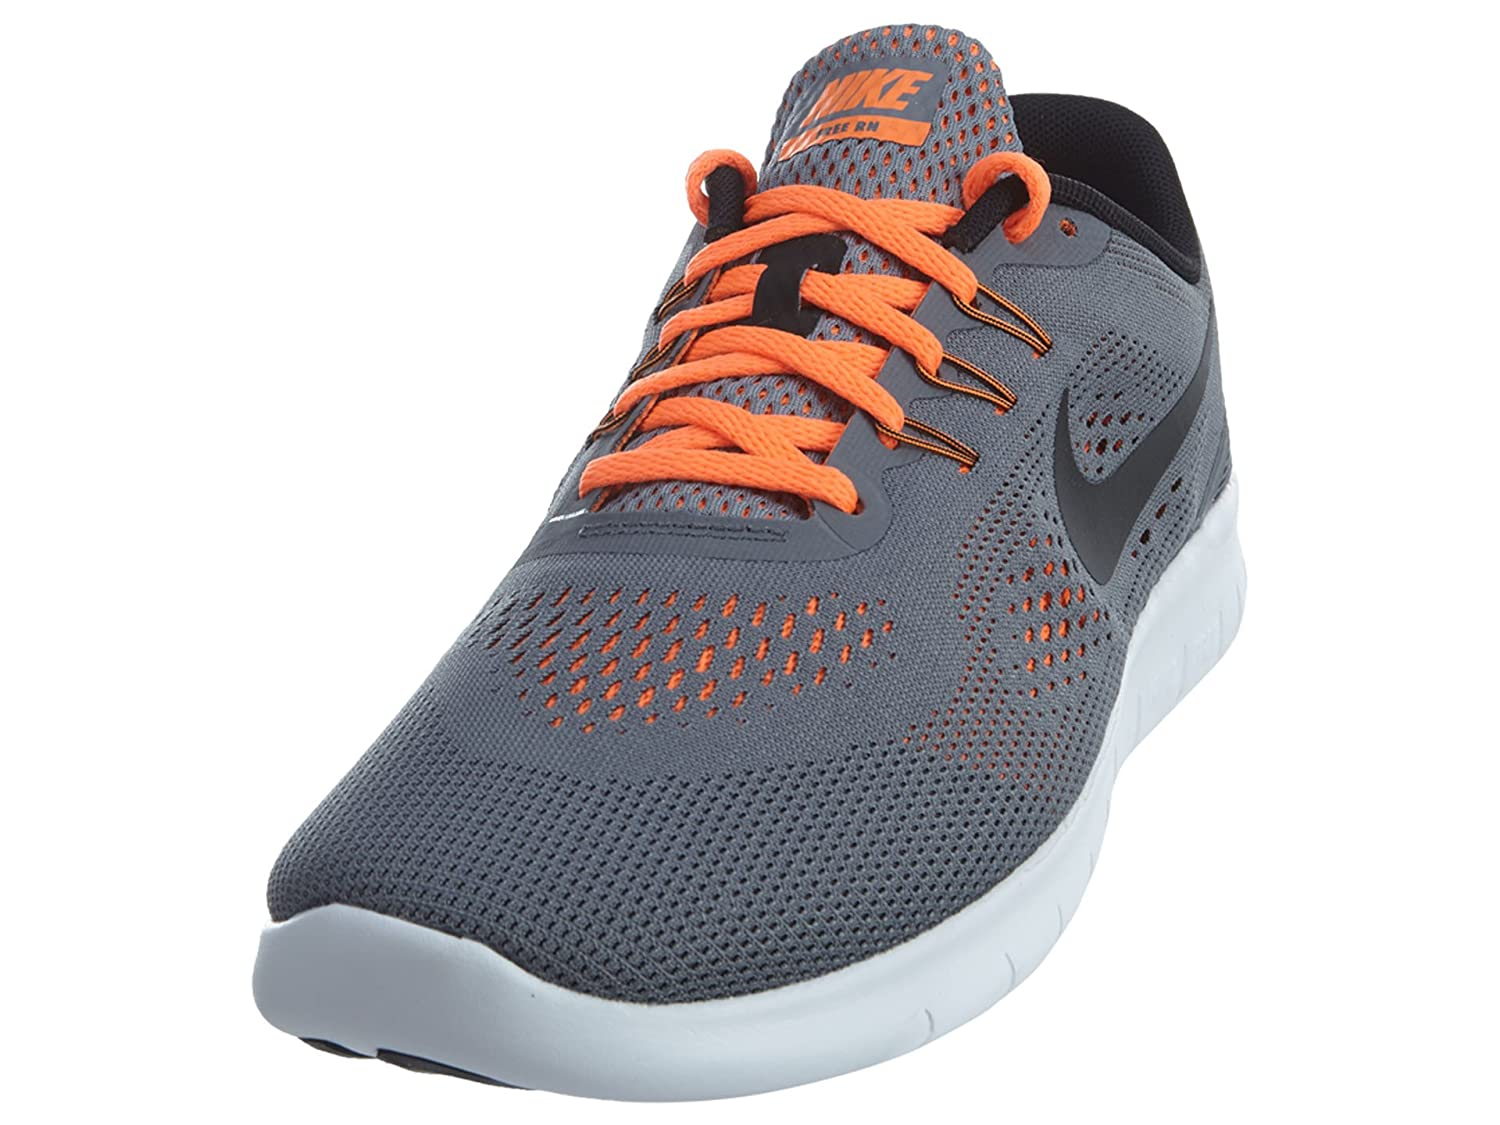 NIKE ' Free Rn (Big) B01CRK65HM 6 M US Big Kid|Cool Grey/Black/Total Orange